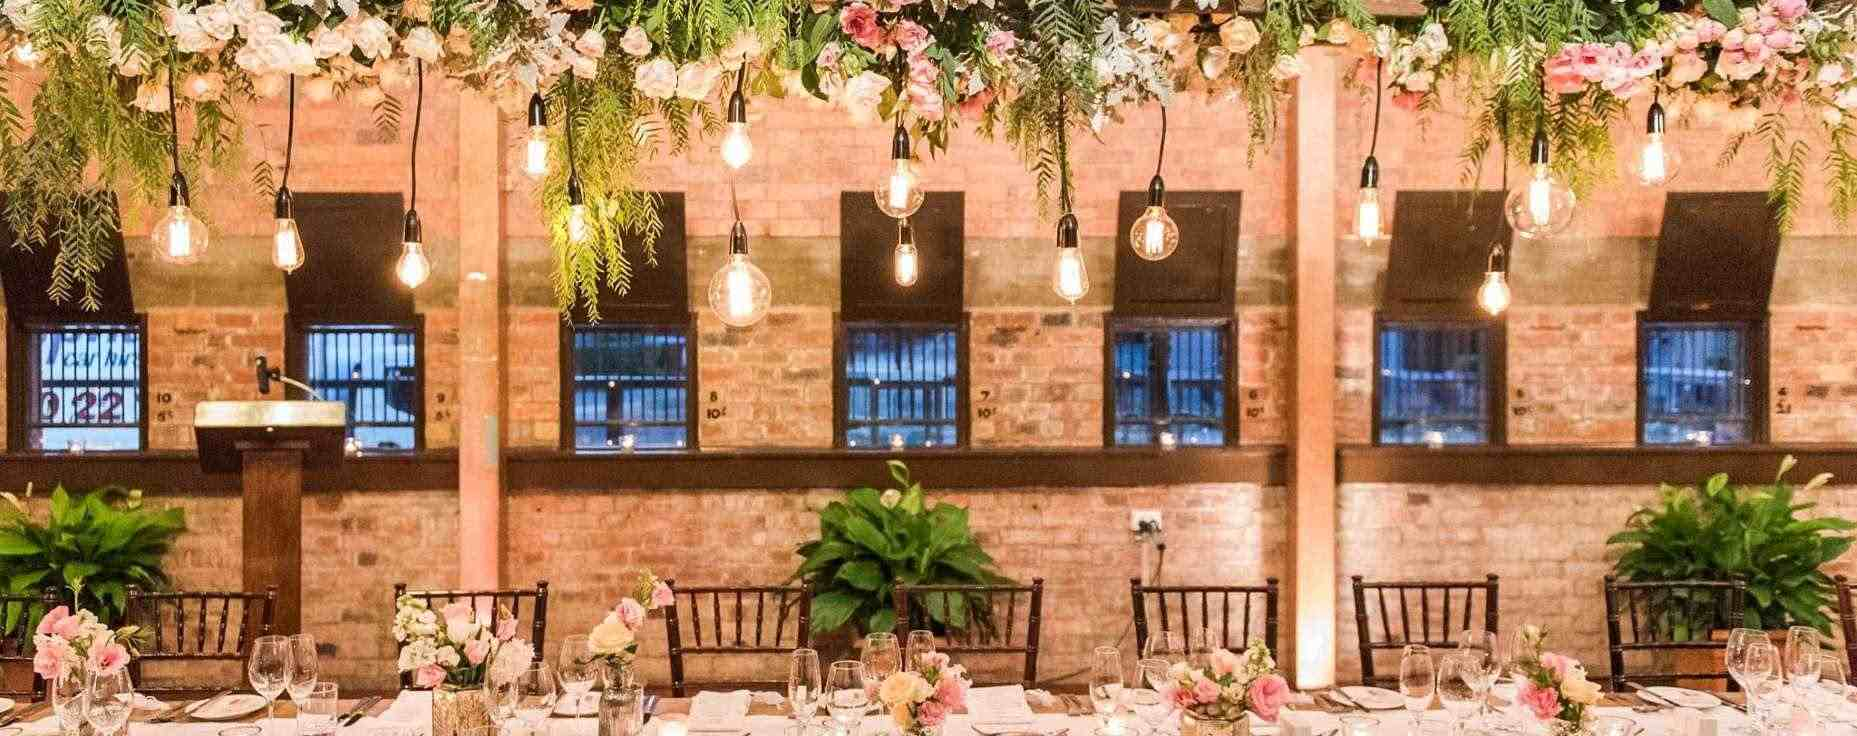 Wedding Venues Find And Compare Wedding Venues Veilability